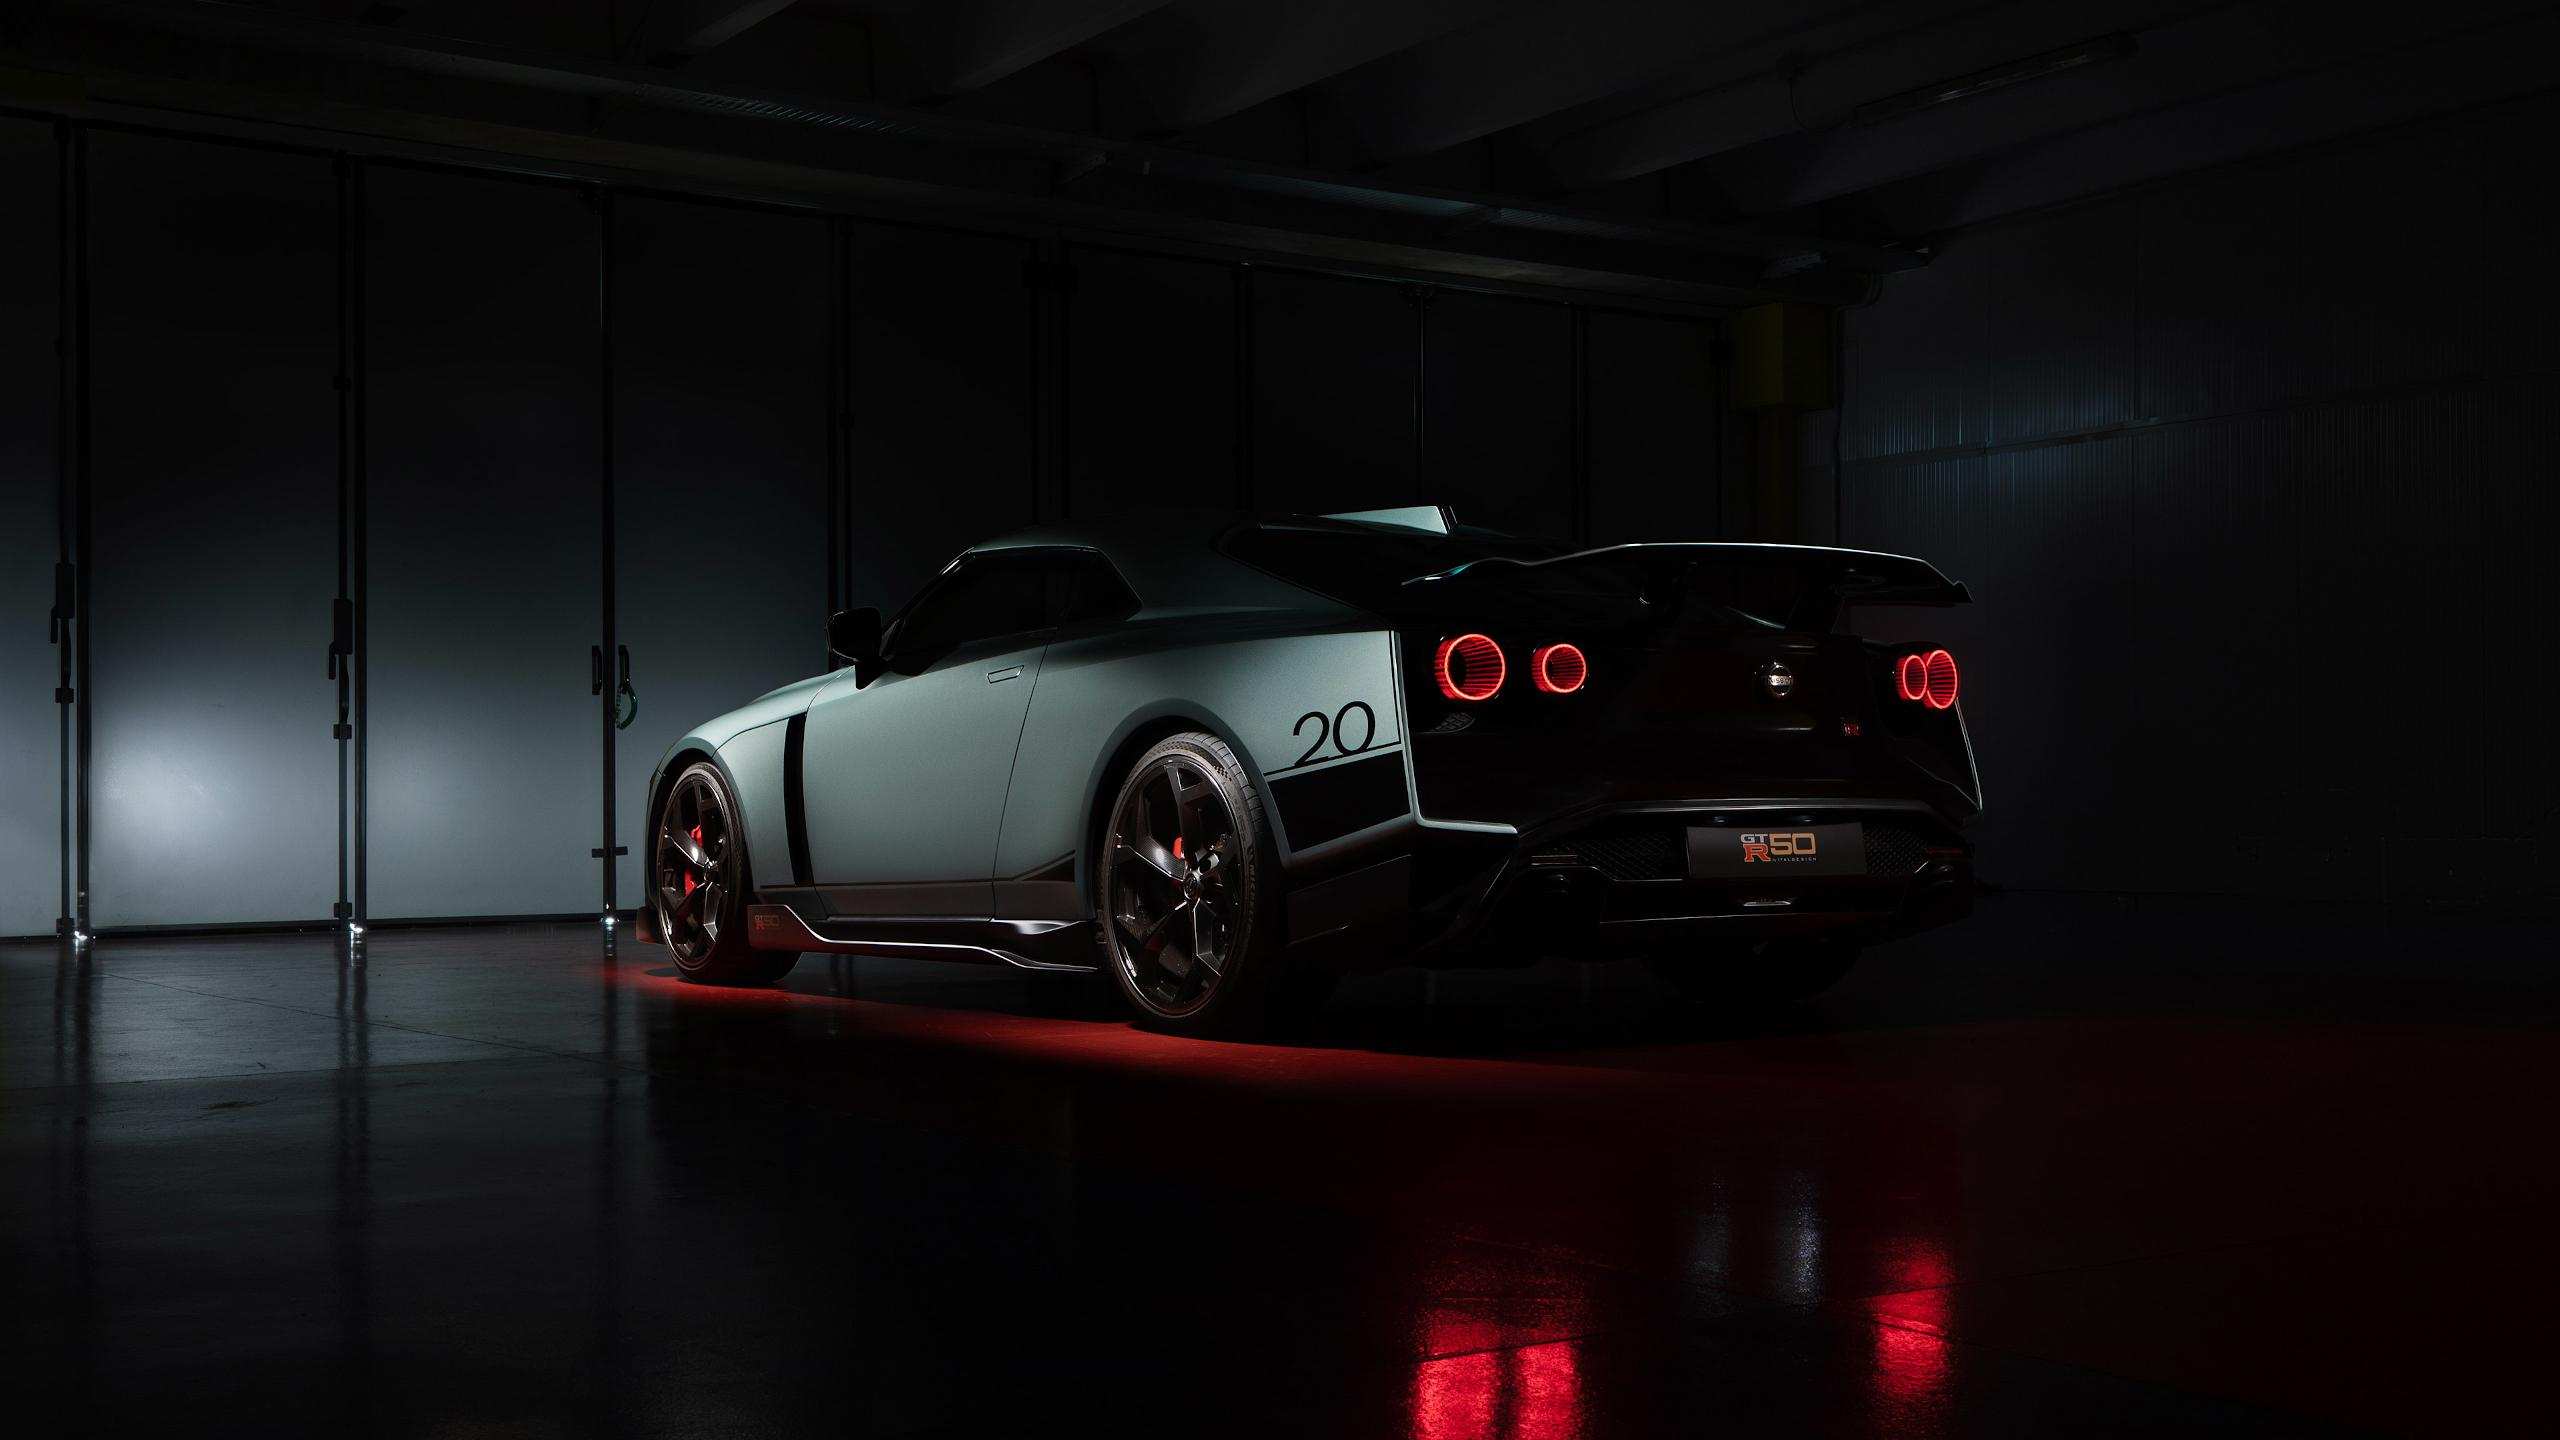 Nissan 4k Wallpapers For Your Desktop Or Mobile Screen Free And Easy To Download